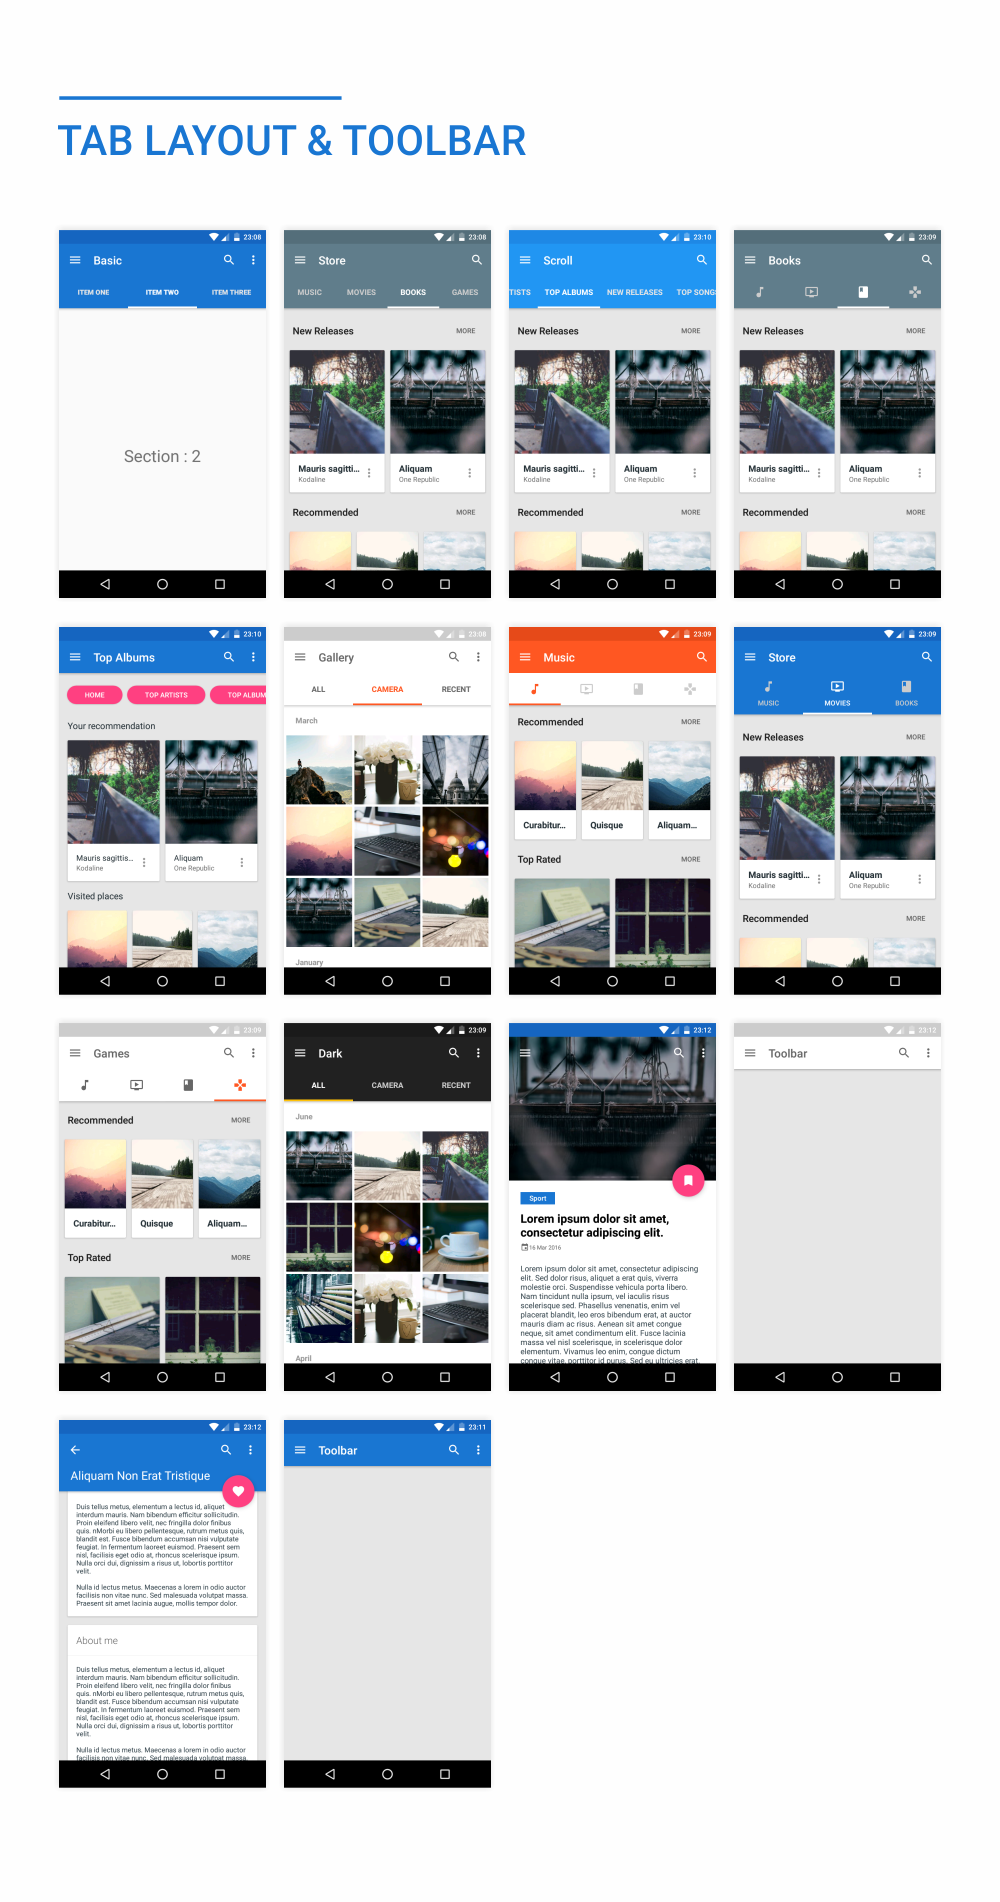 MaterialX - Android Material Design UI Components 2.4 - 40